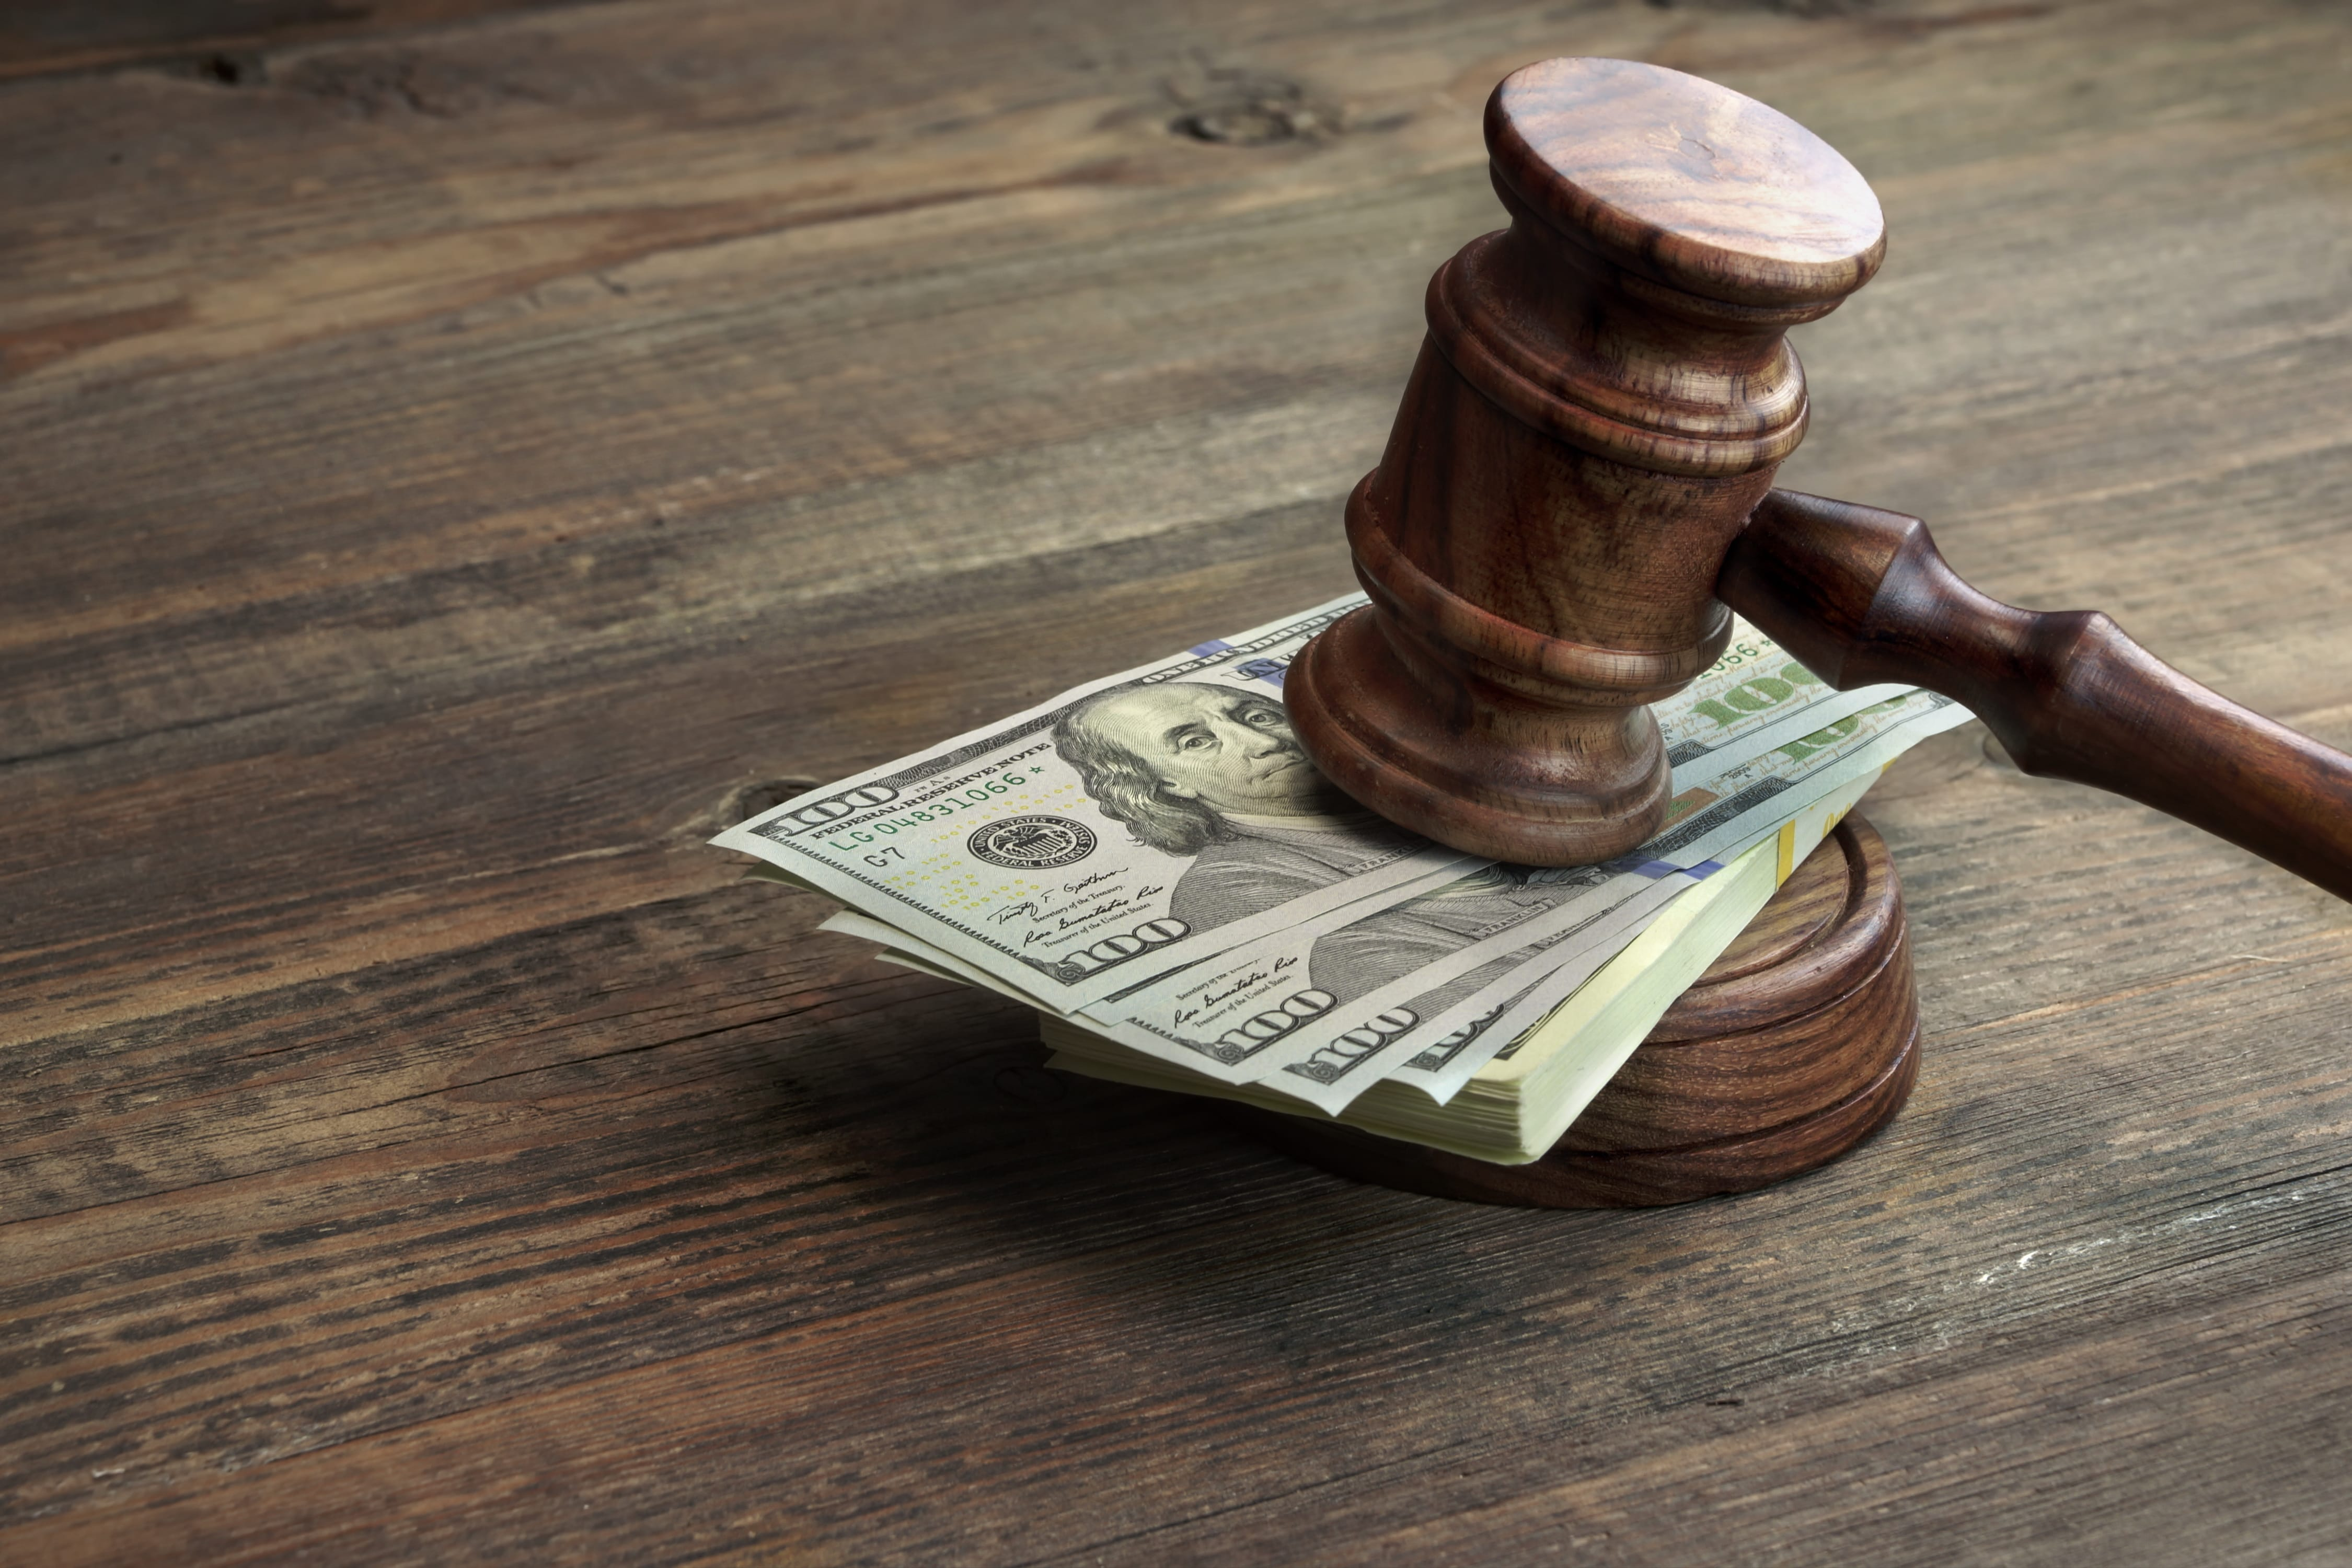 gavel sits on a pile of bills, pending the financial outcome of a divorce